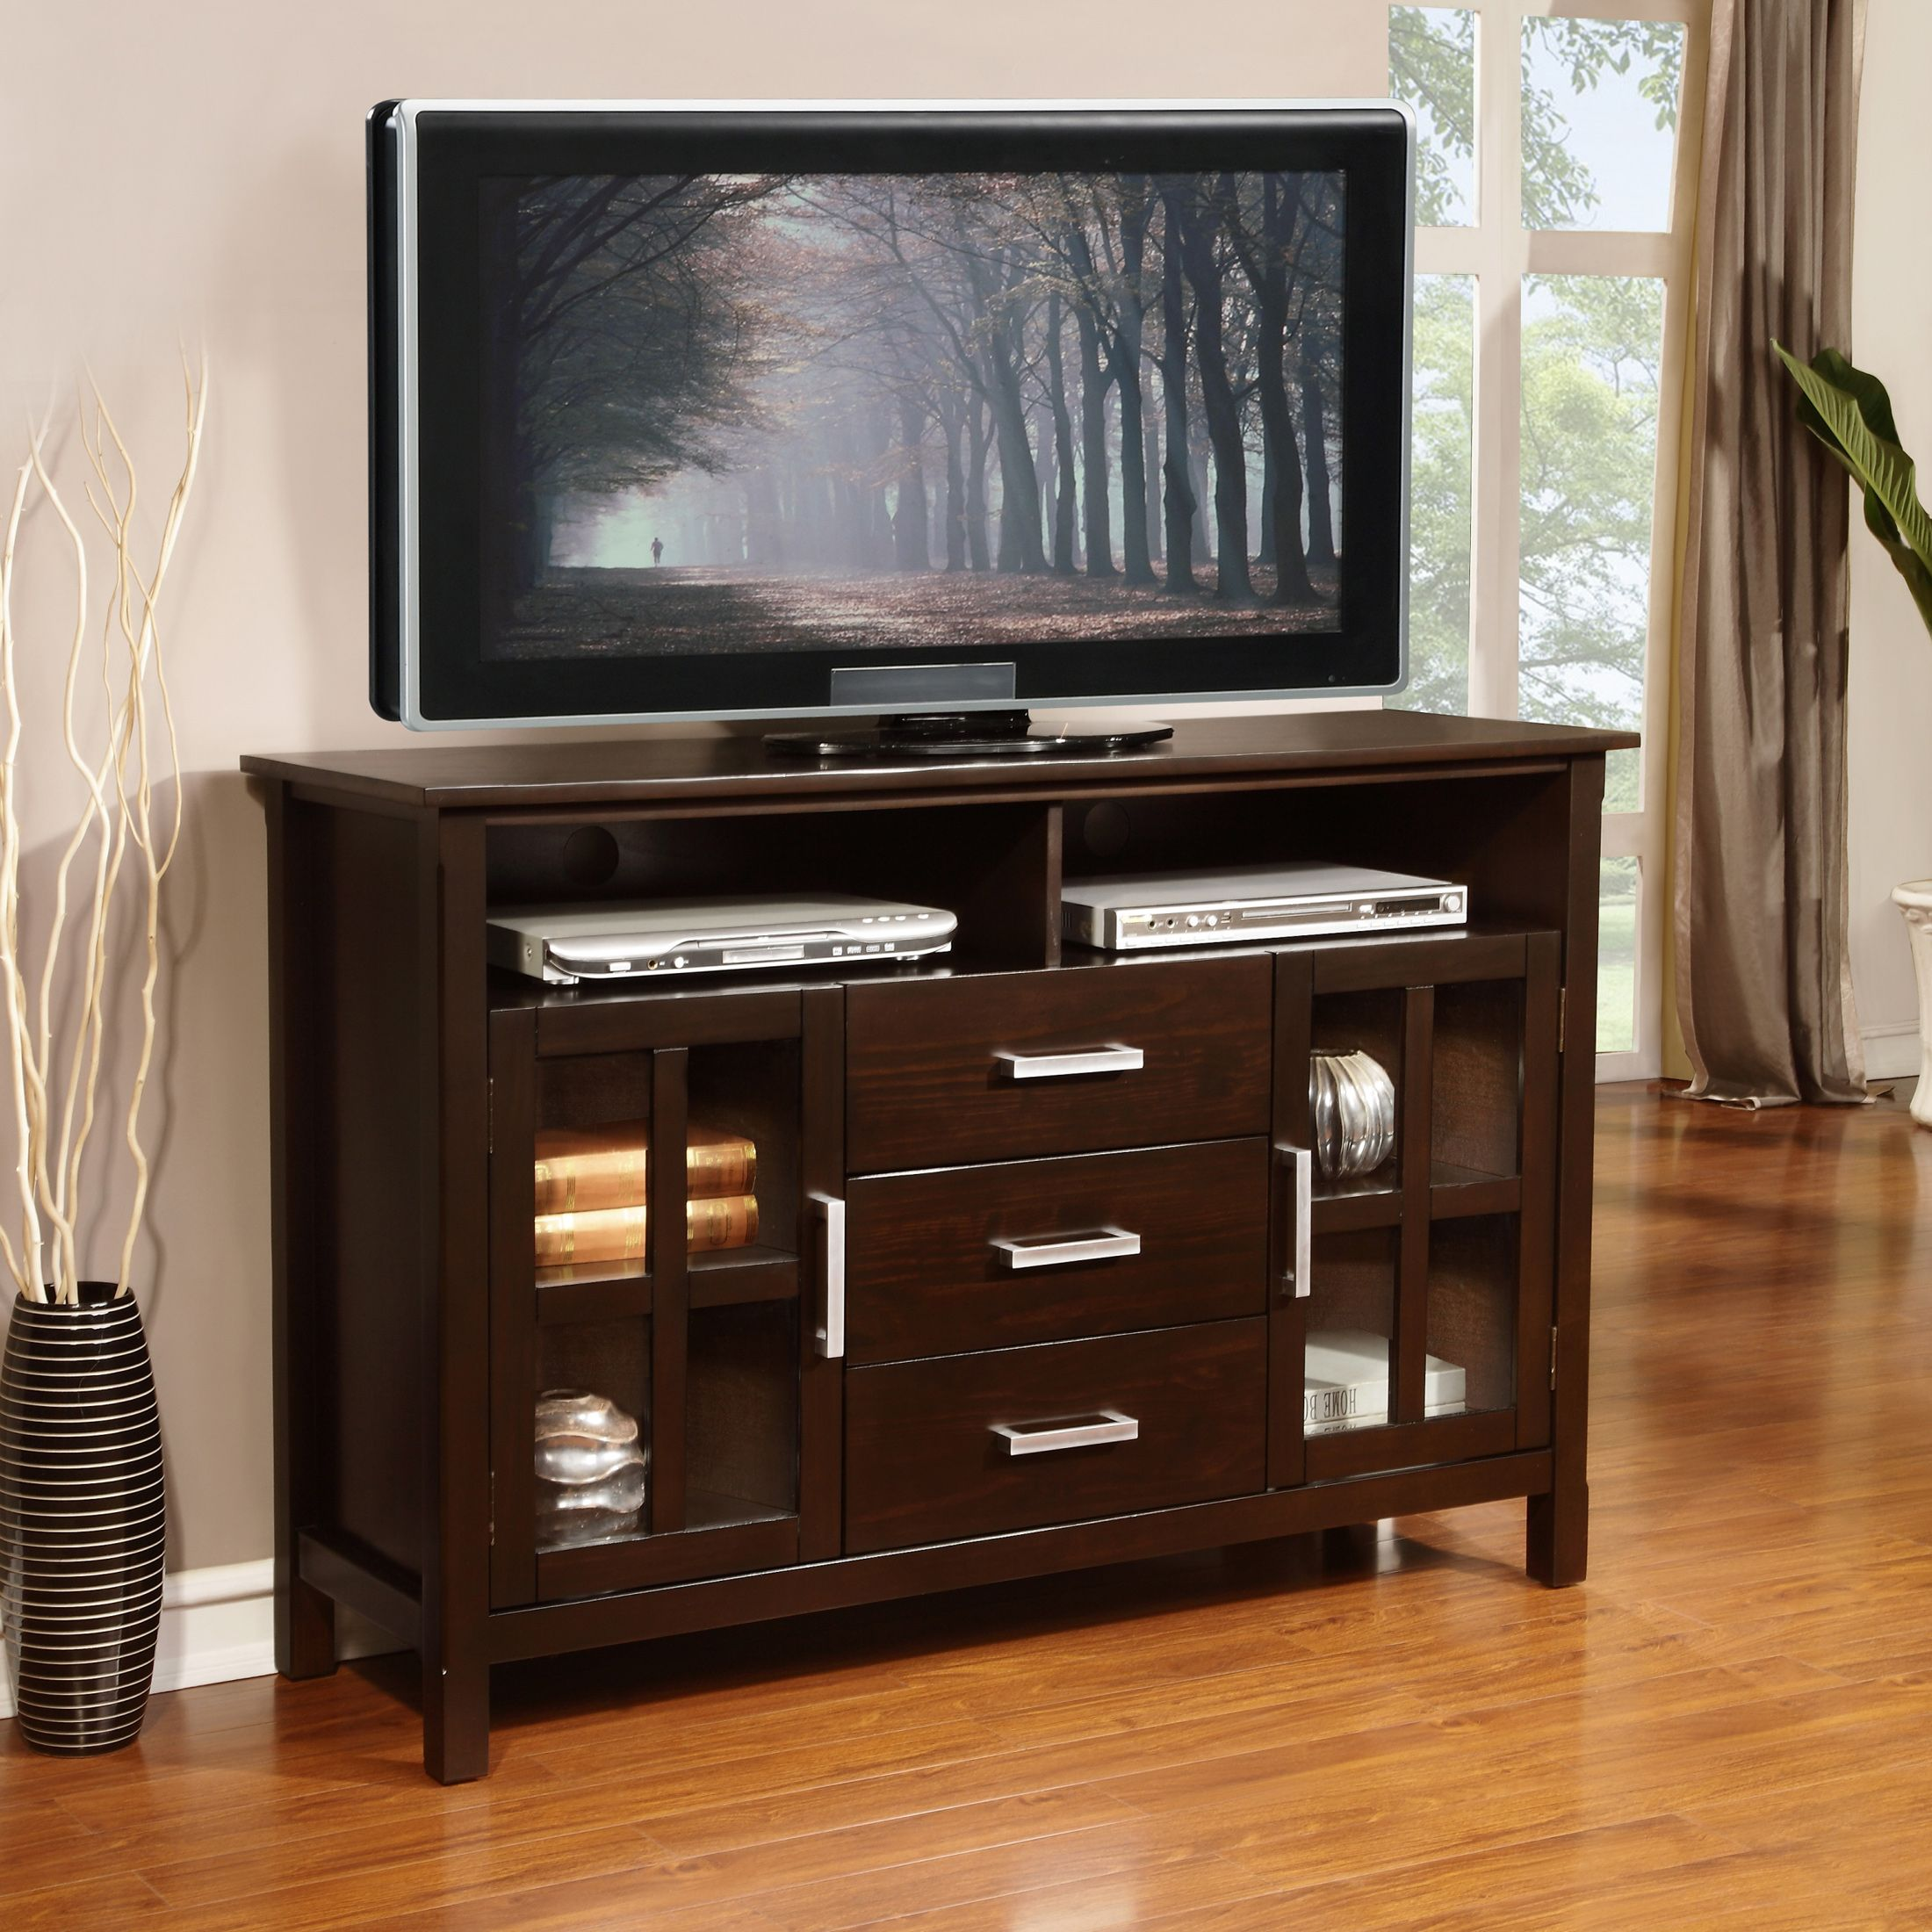 Complete Your Living Room With The Contemporary Elegance Of The Waterloo  Tall TV Stand. A Large Central Top Open Area, Centrally Located Drawers And  Side ...